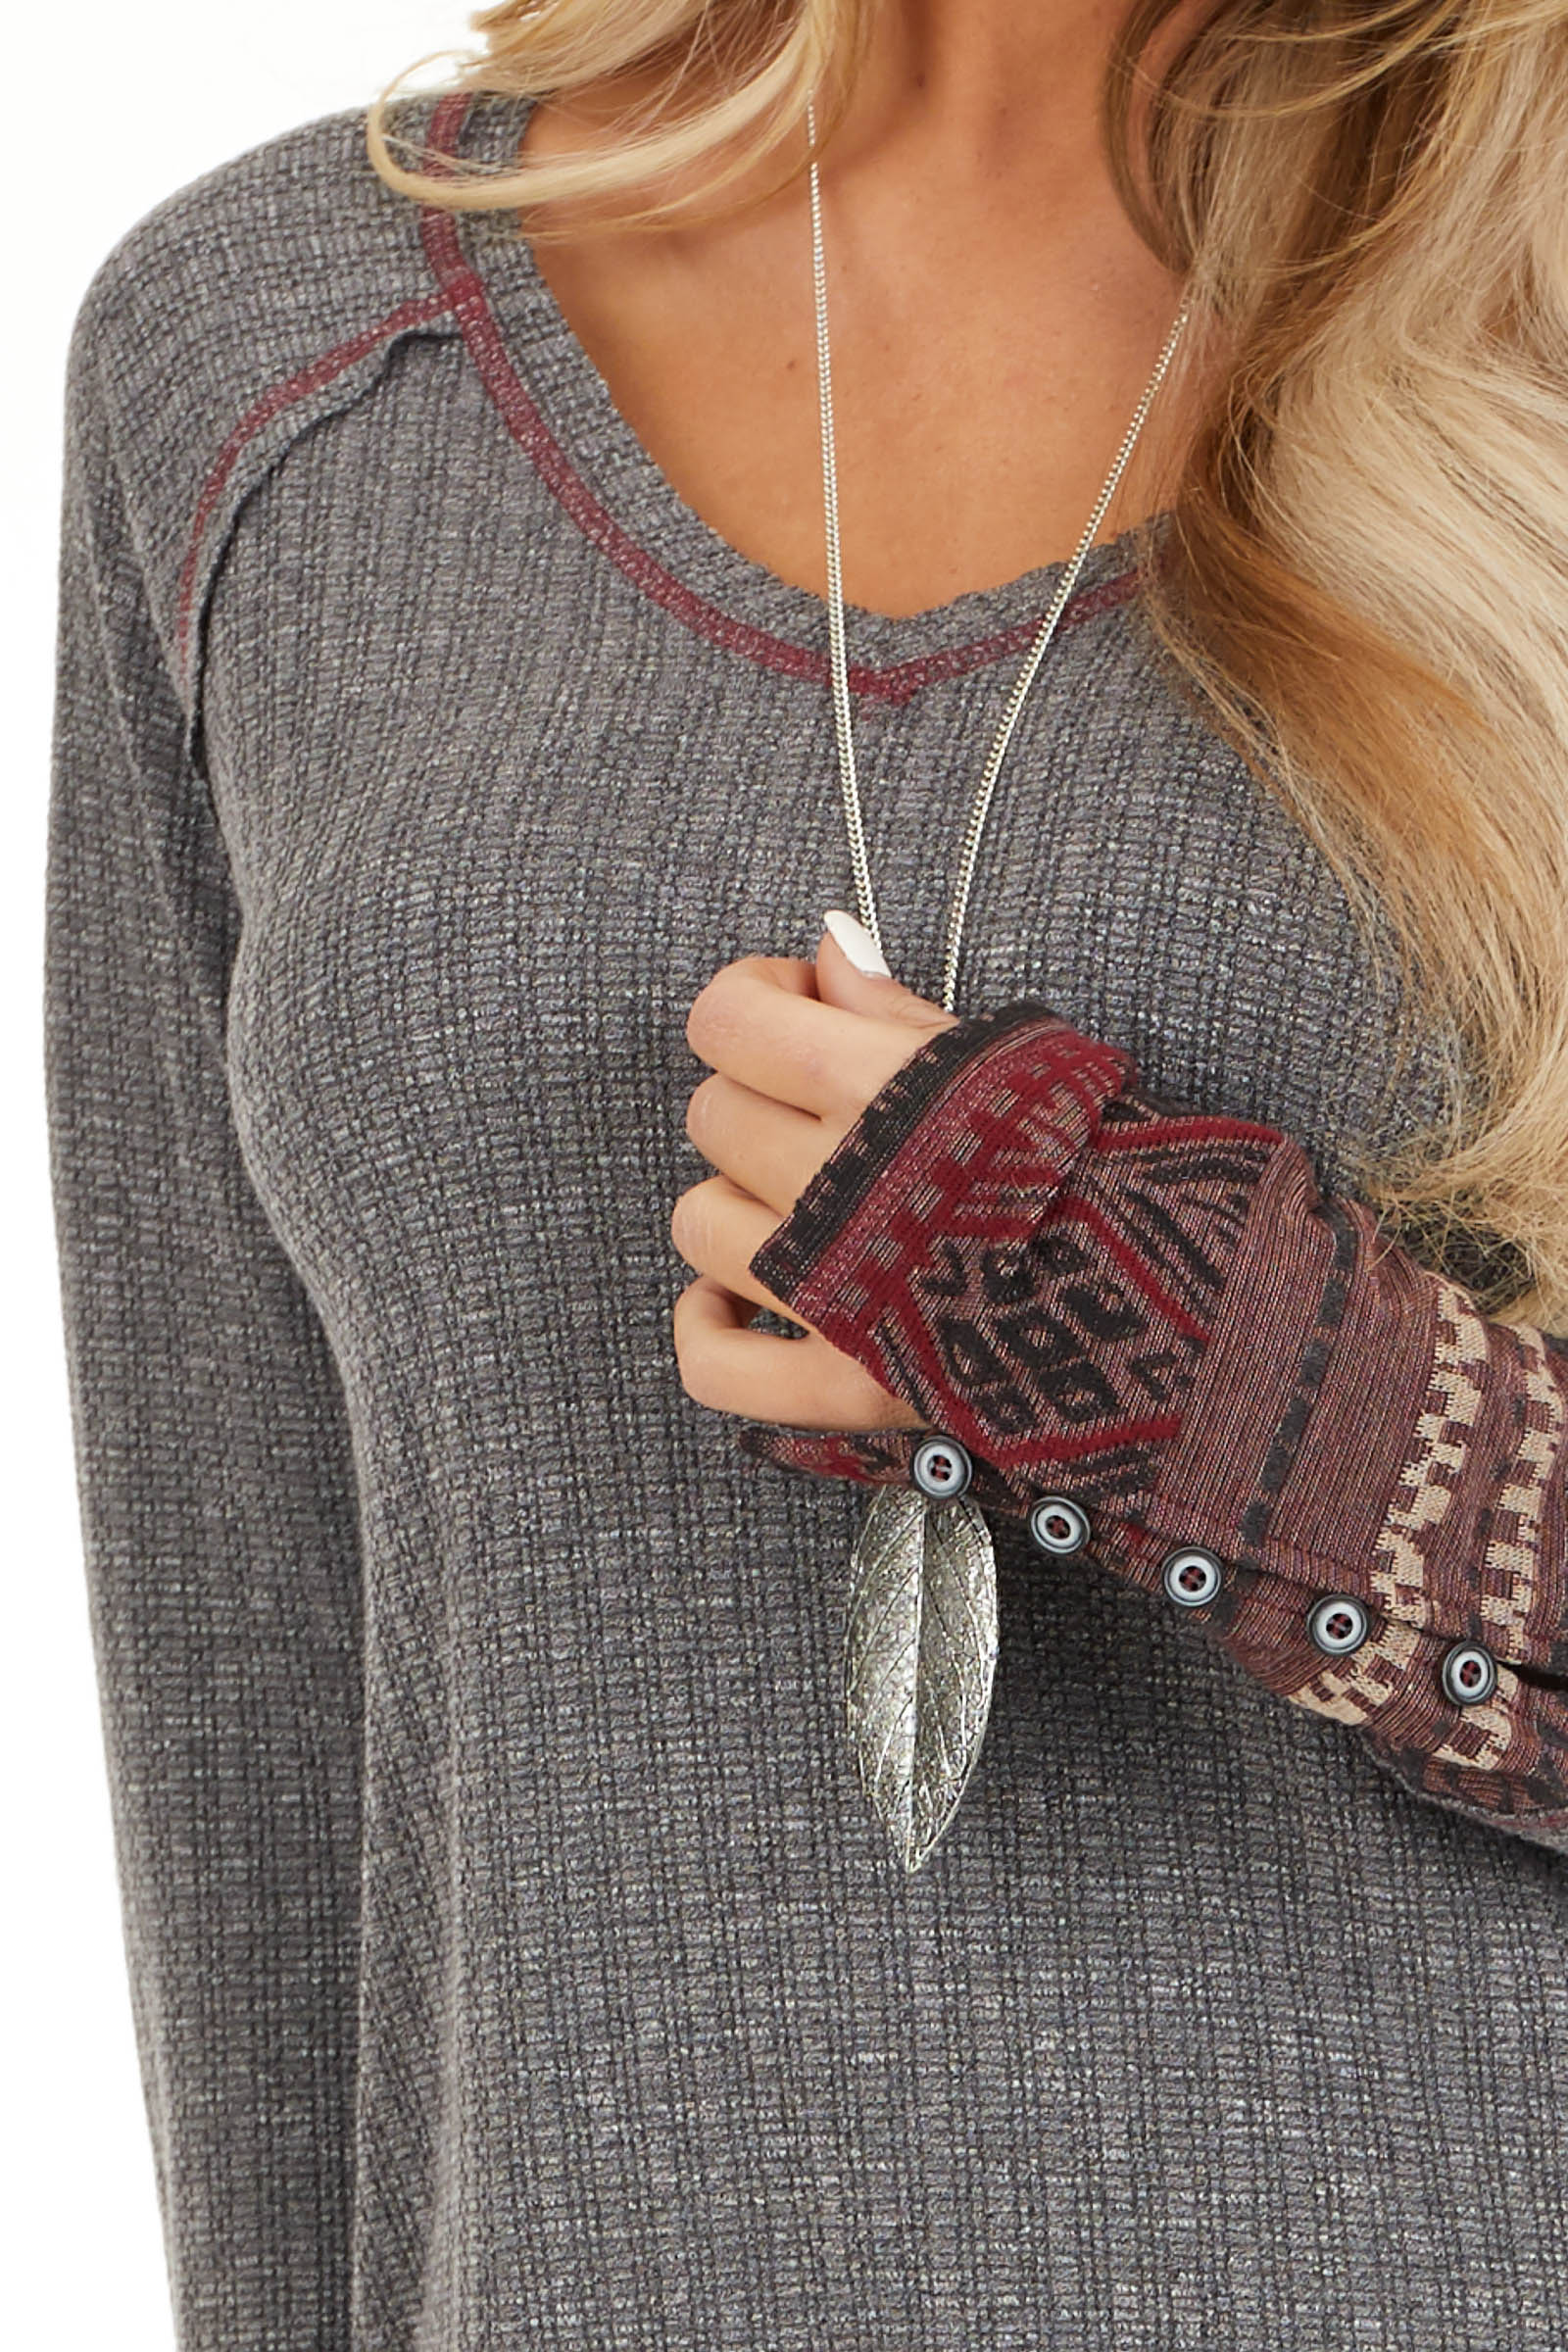 Charcoal Knit Long Sleeve Top with Aztec Print Contrast detail